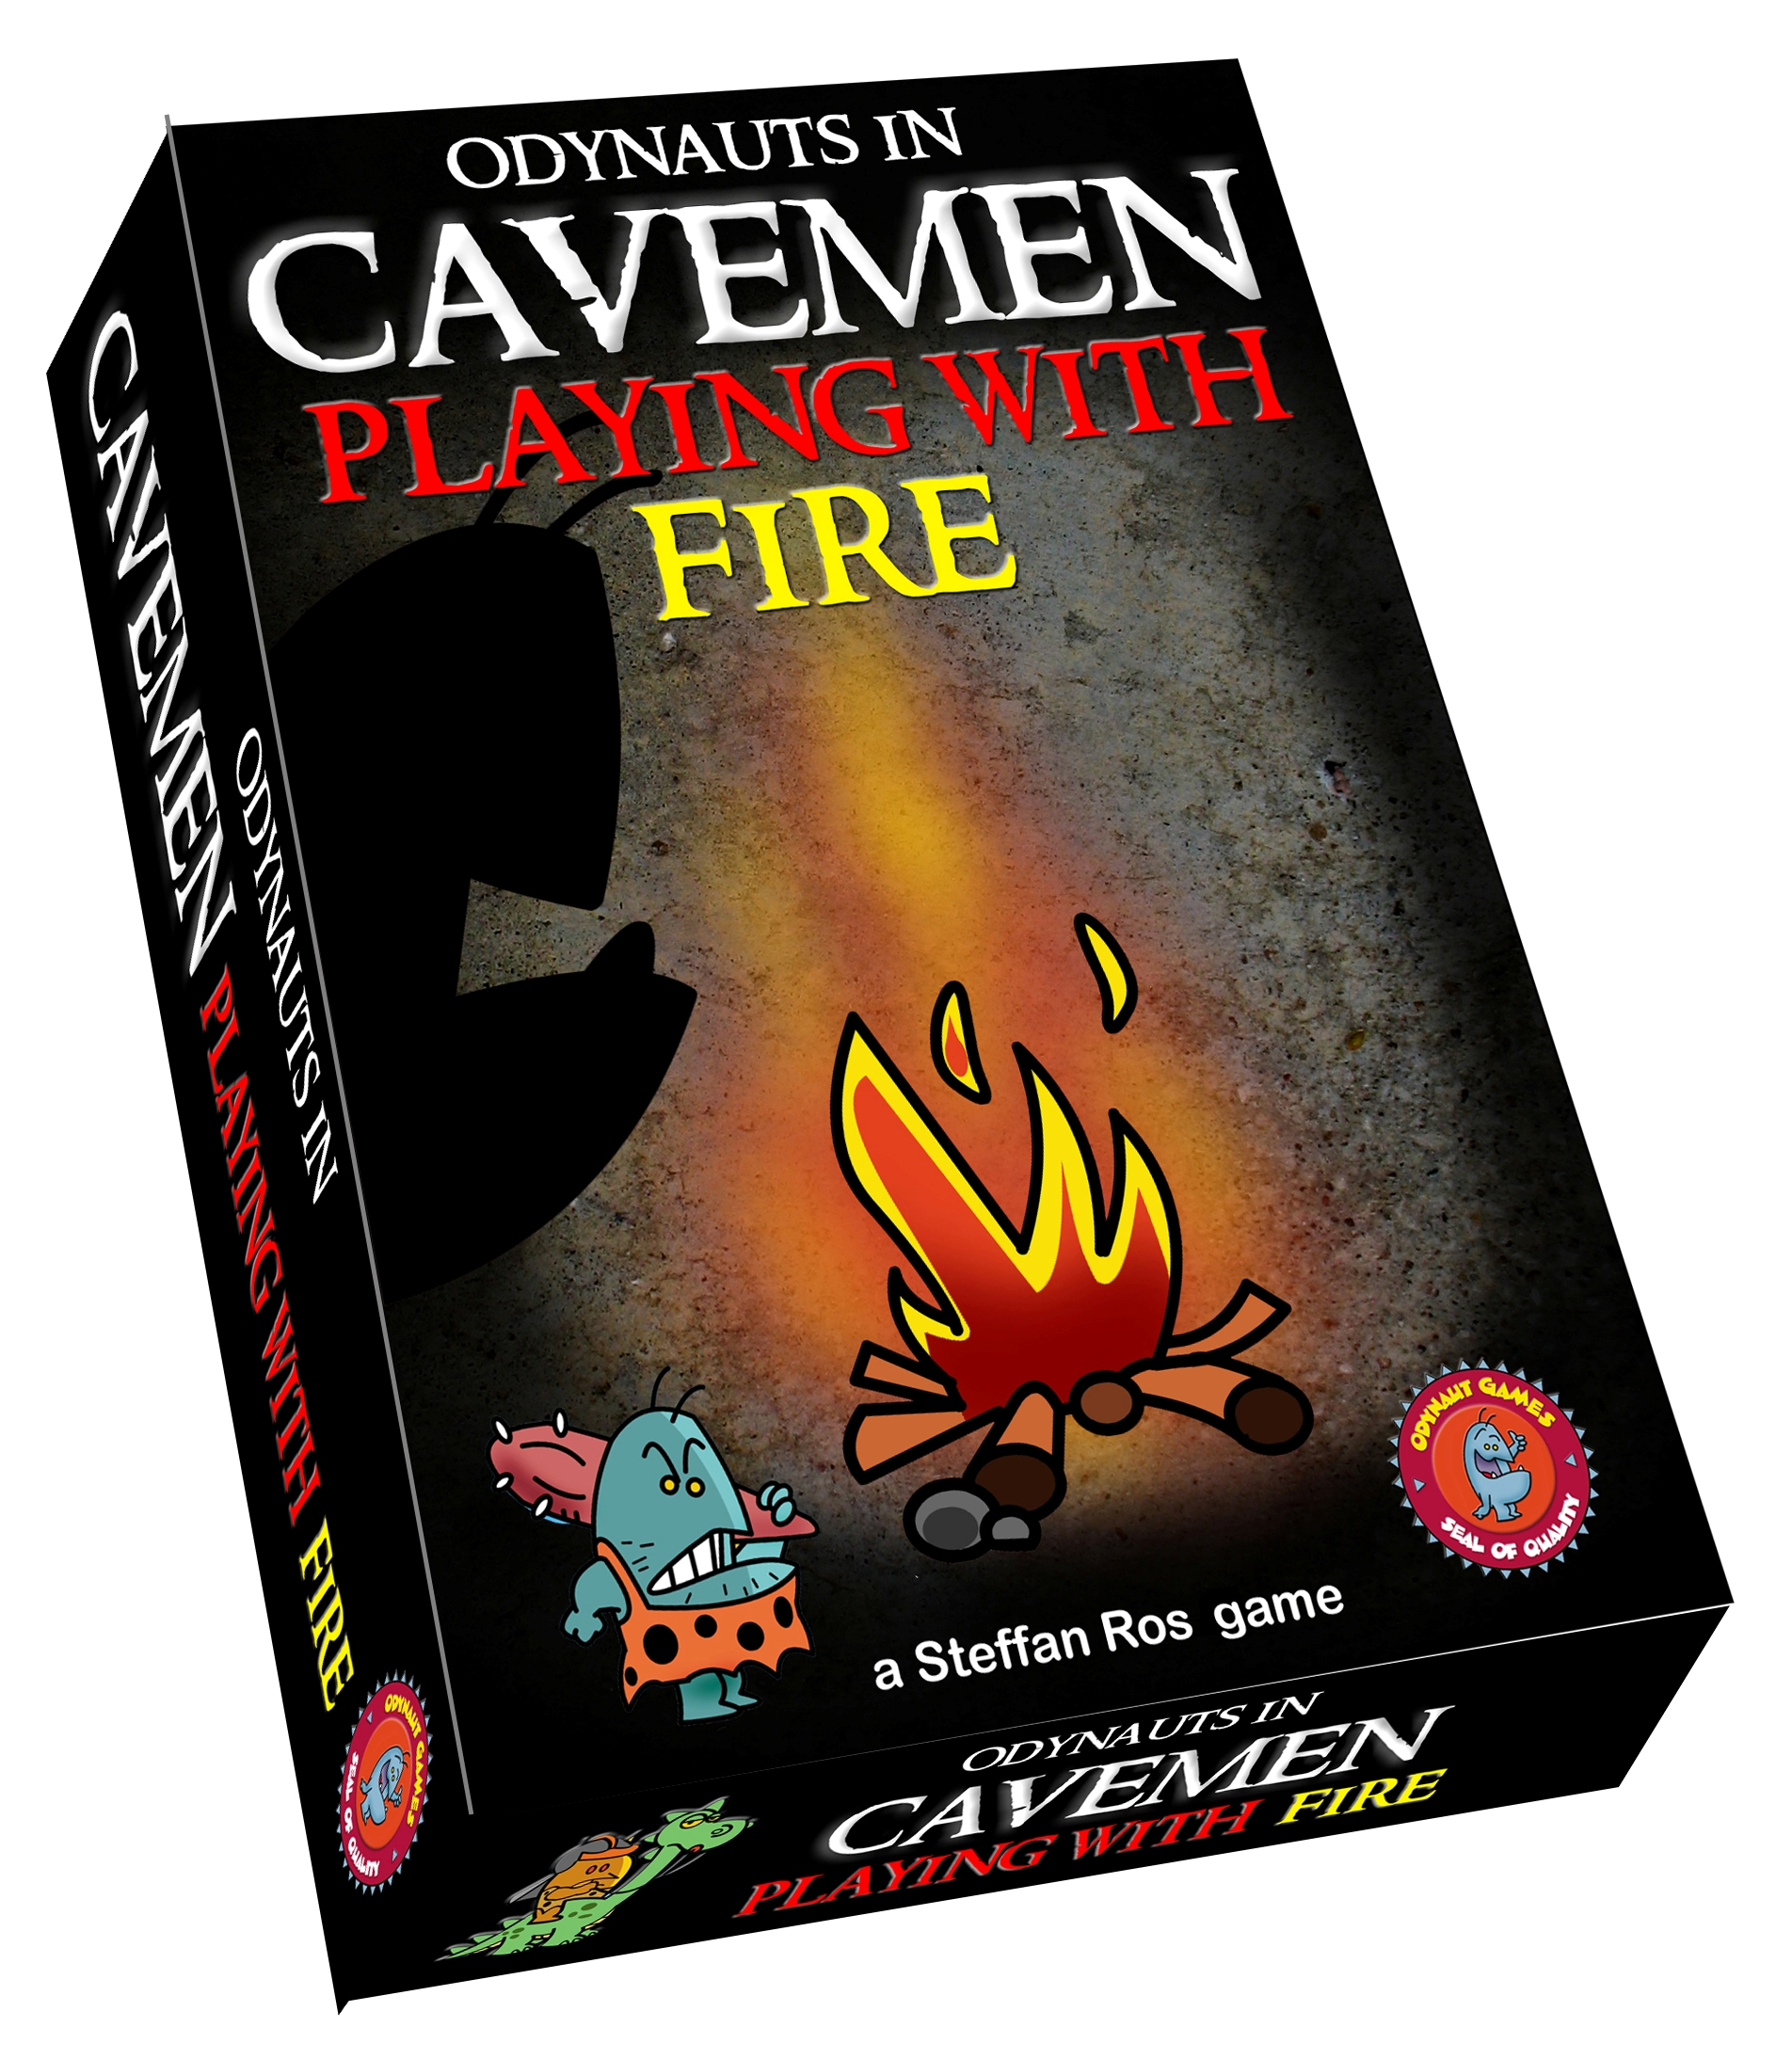 Cavemen playing with fire, Odynaut Games, doos